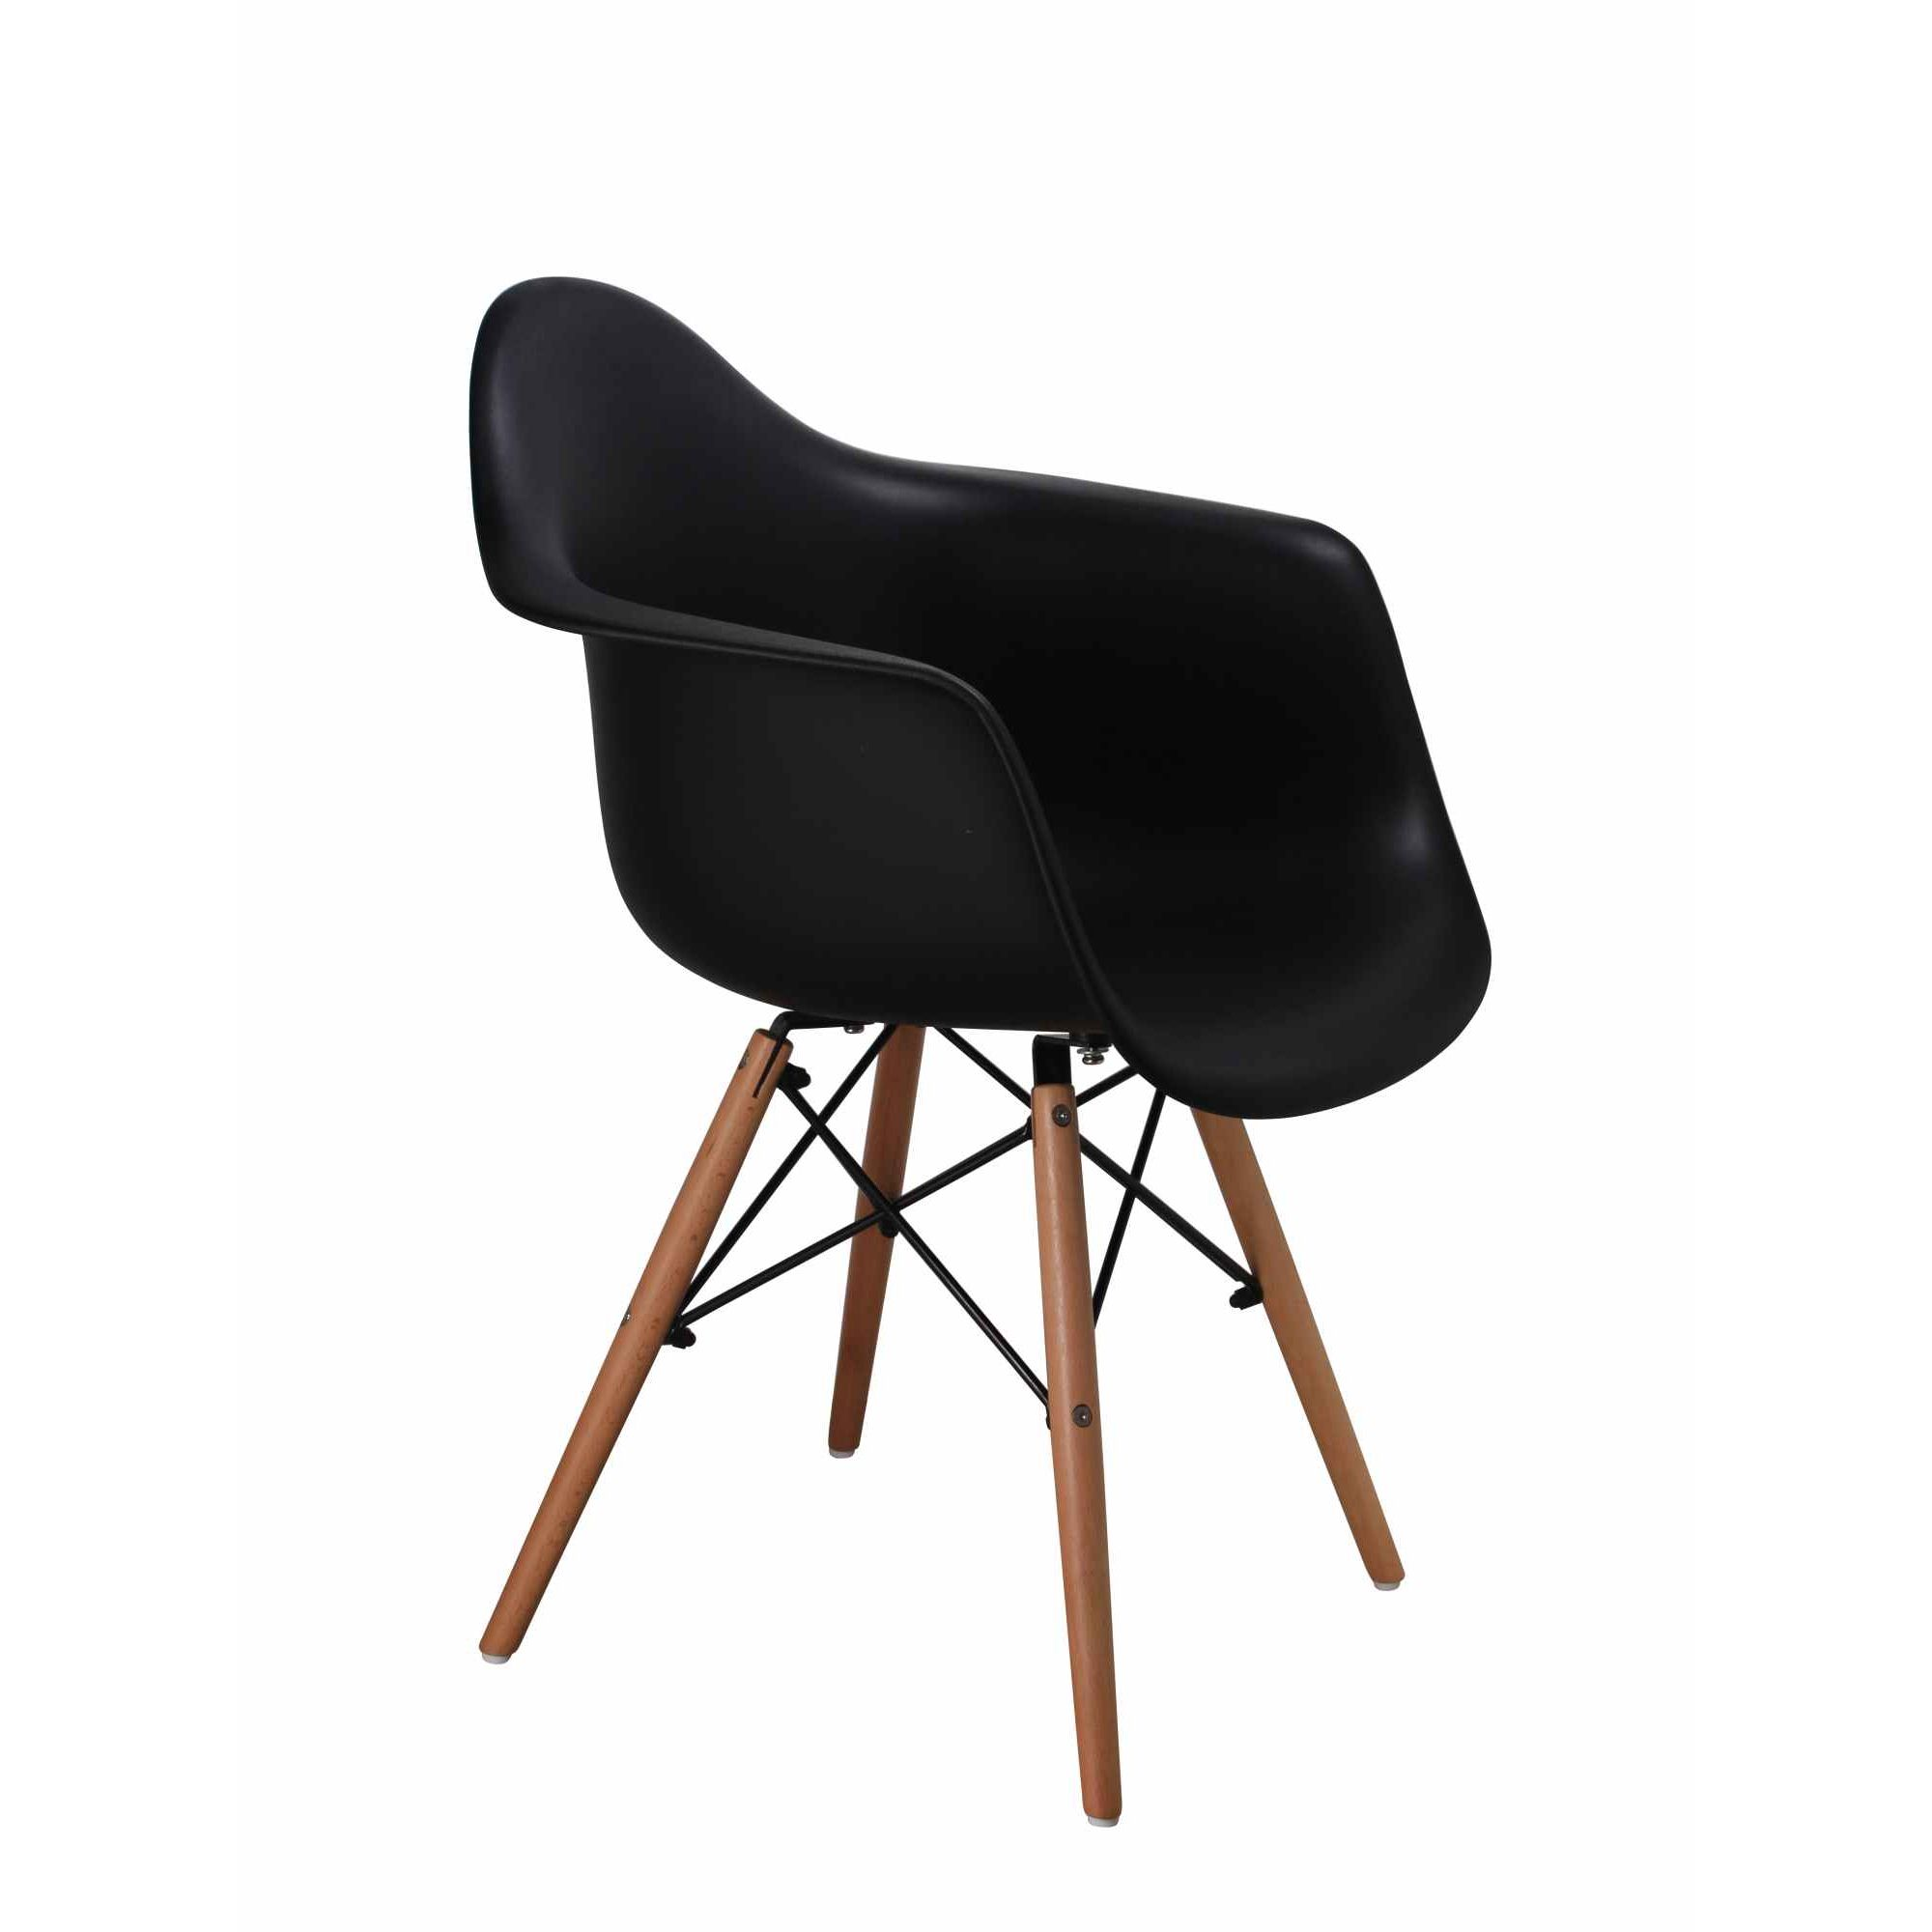 deco in paris 5 lot de 2 chaises scandinaves noires avec accoudoirs nina ninaaccourdoirs x2 noir. Black Bedroom Furniture Sets. Home Design Ideas